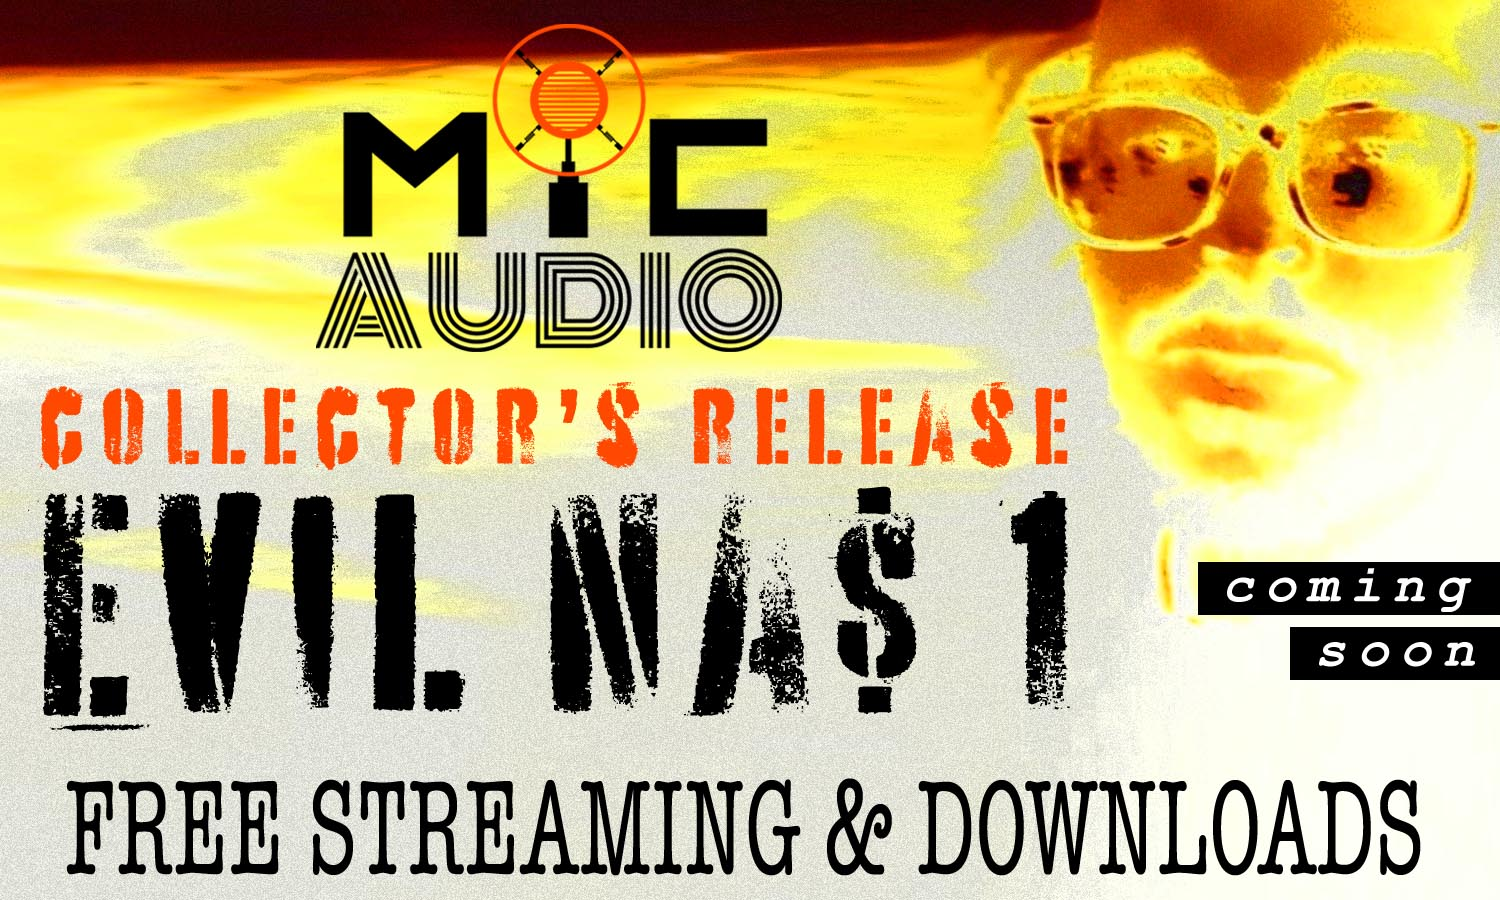 Mic Audio - Evil Na$ 1 Collector's Release | COMING SOON!